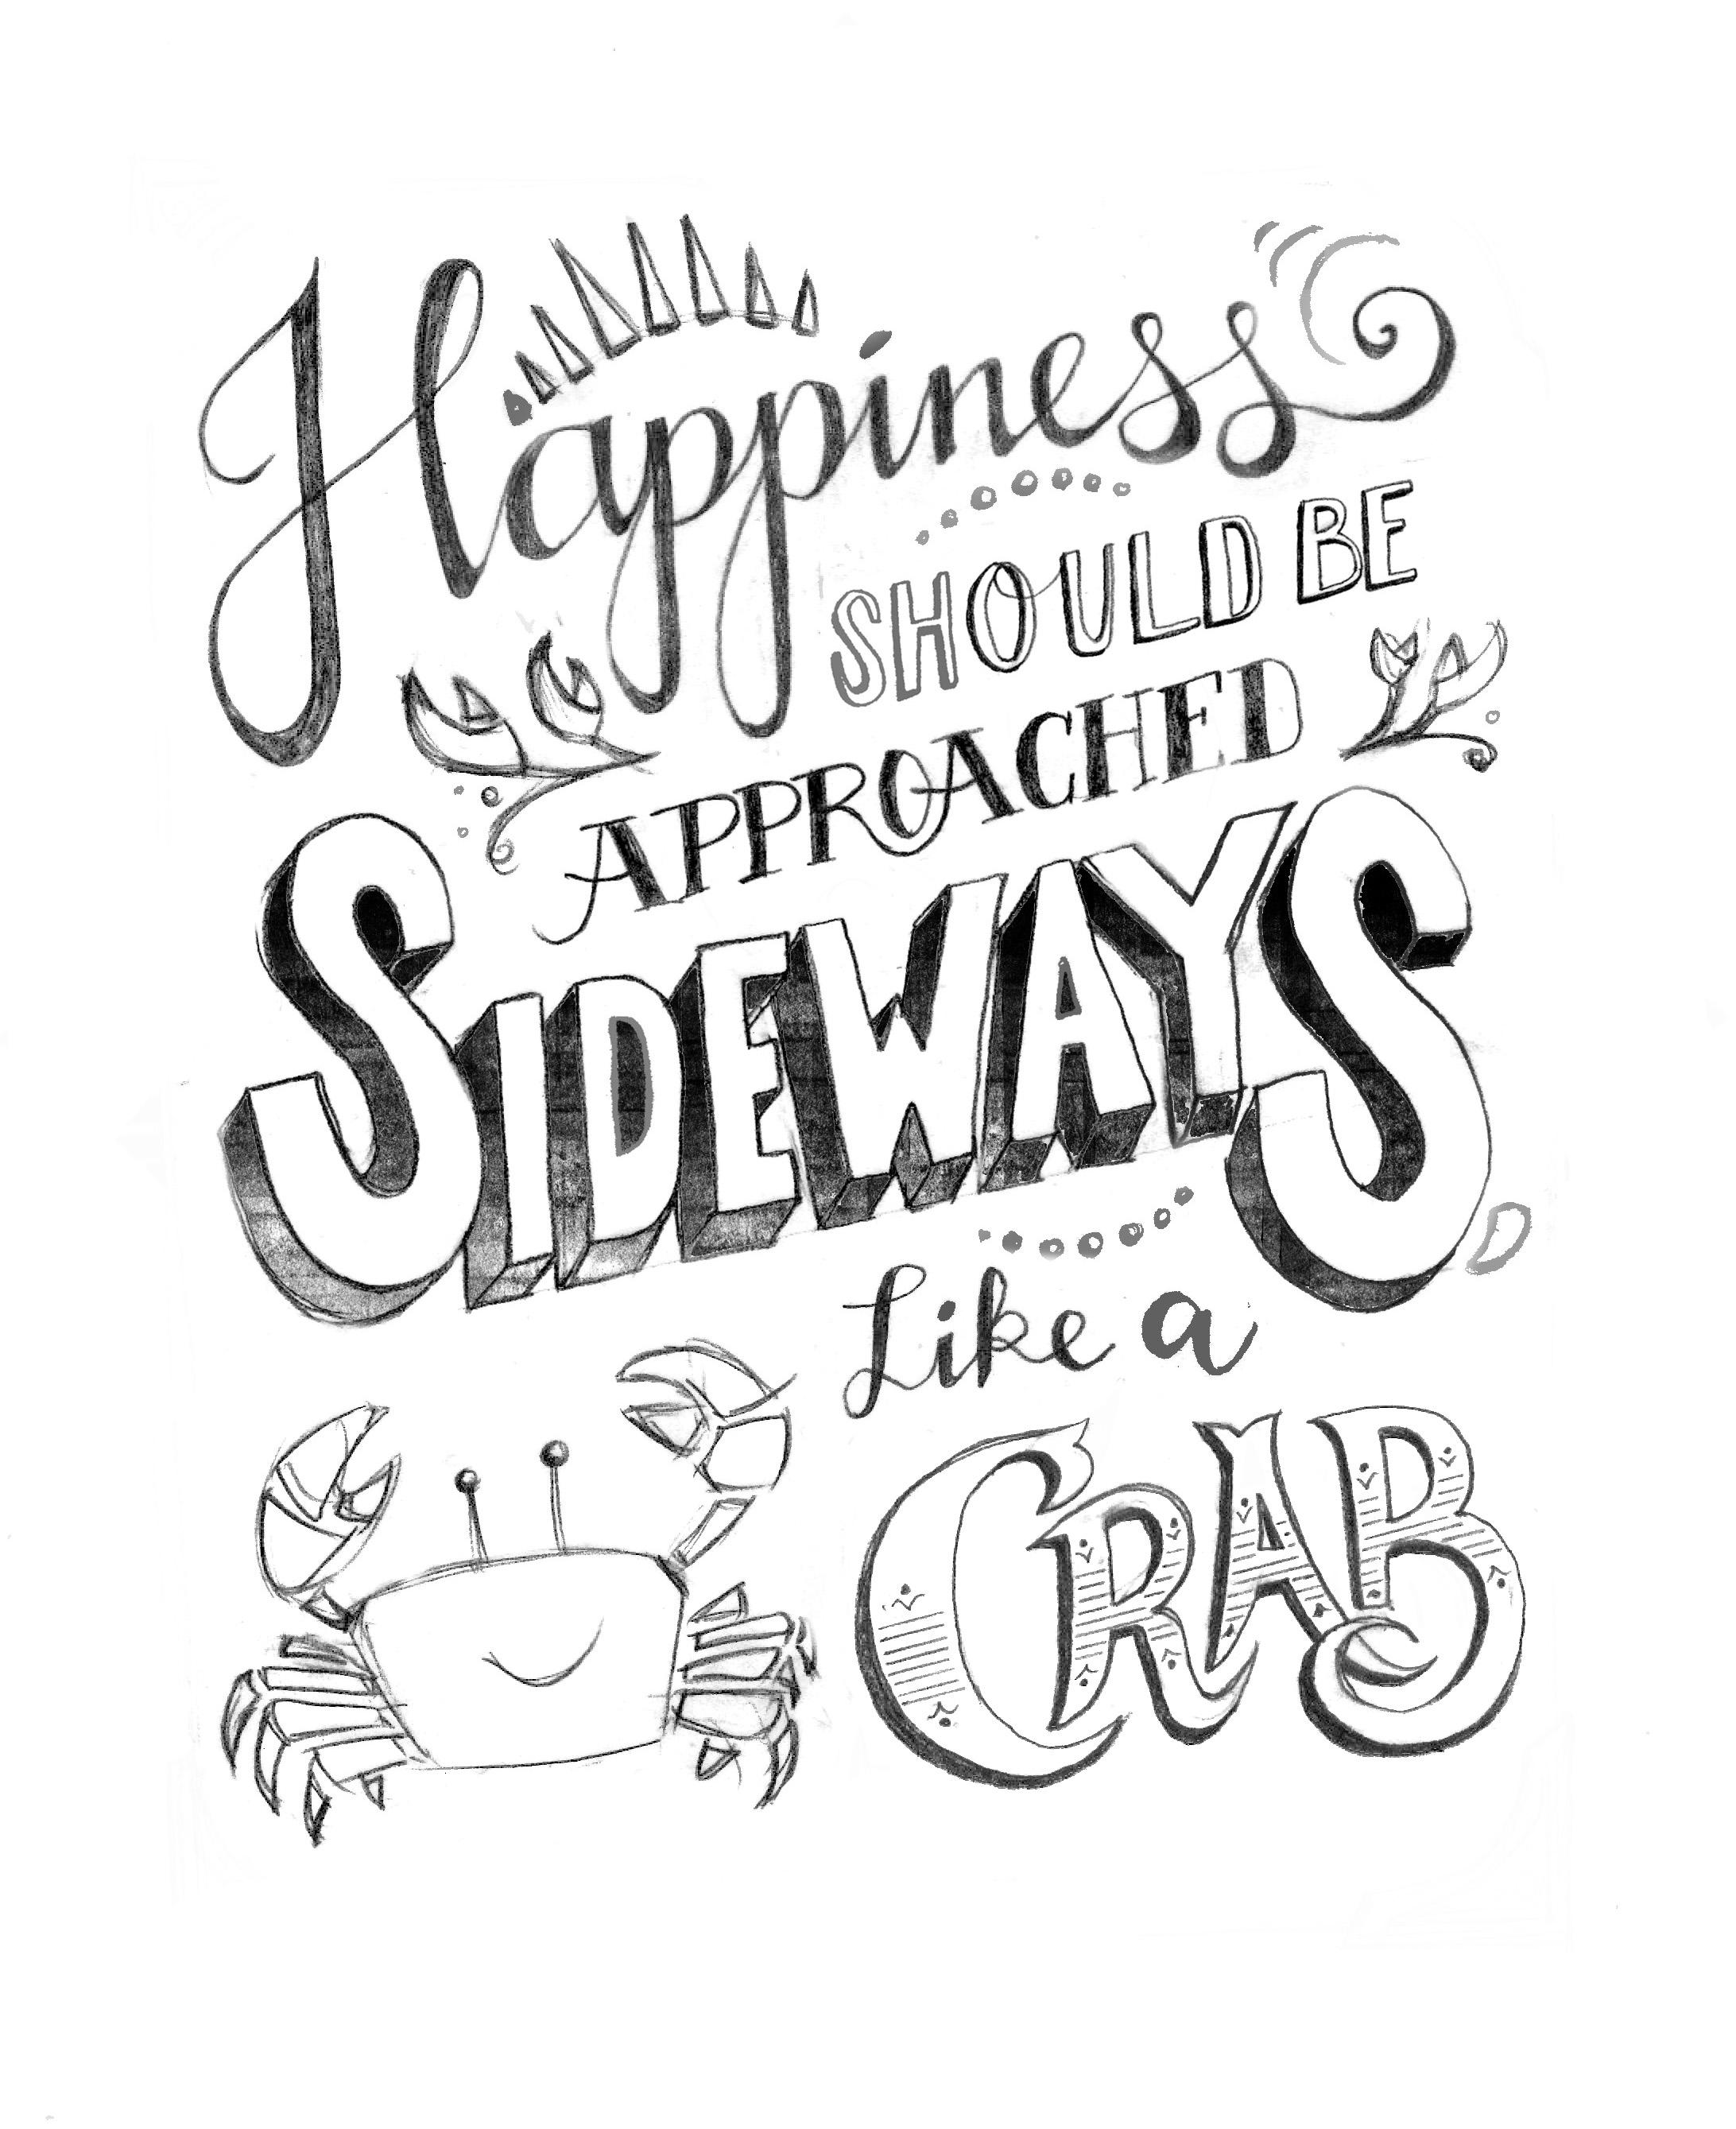 Happiness should be approached sideways, like a crab. - image 8 - student project